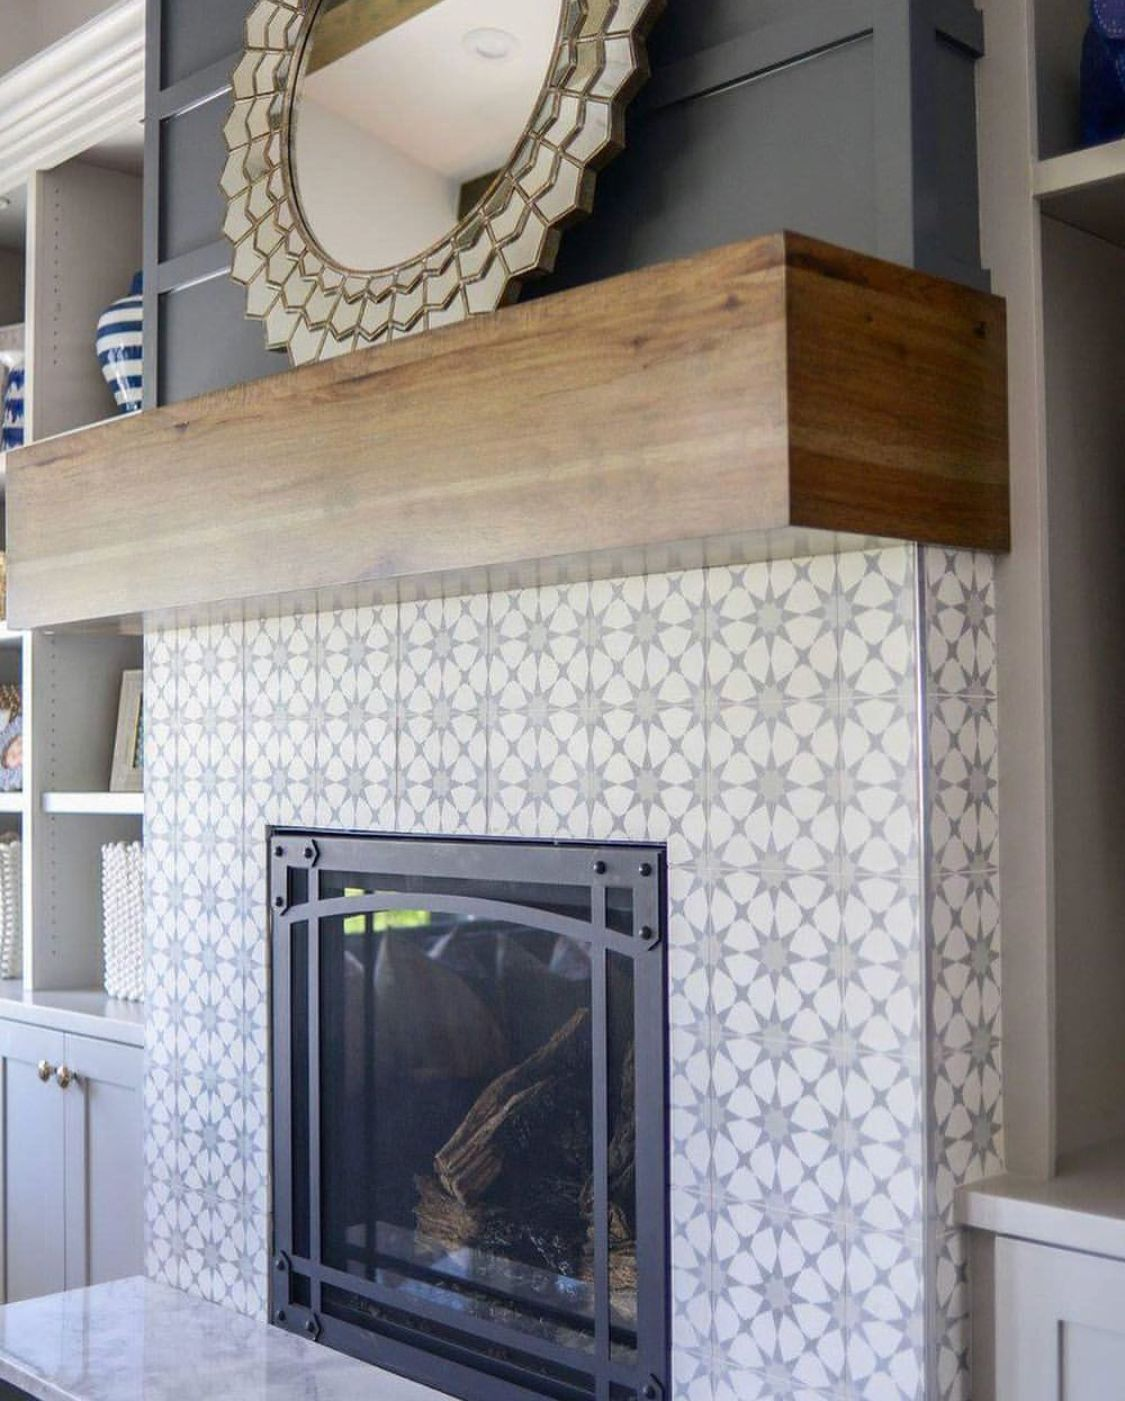 Concrete Tile Fireplace With Hollow Beam Mantel Dark Gray